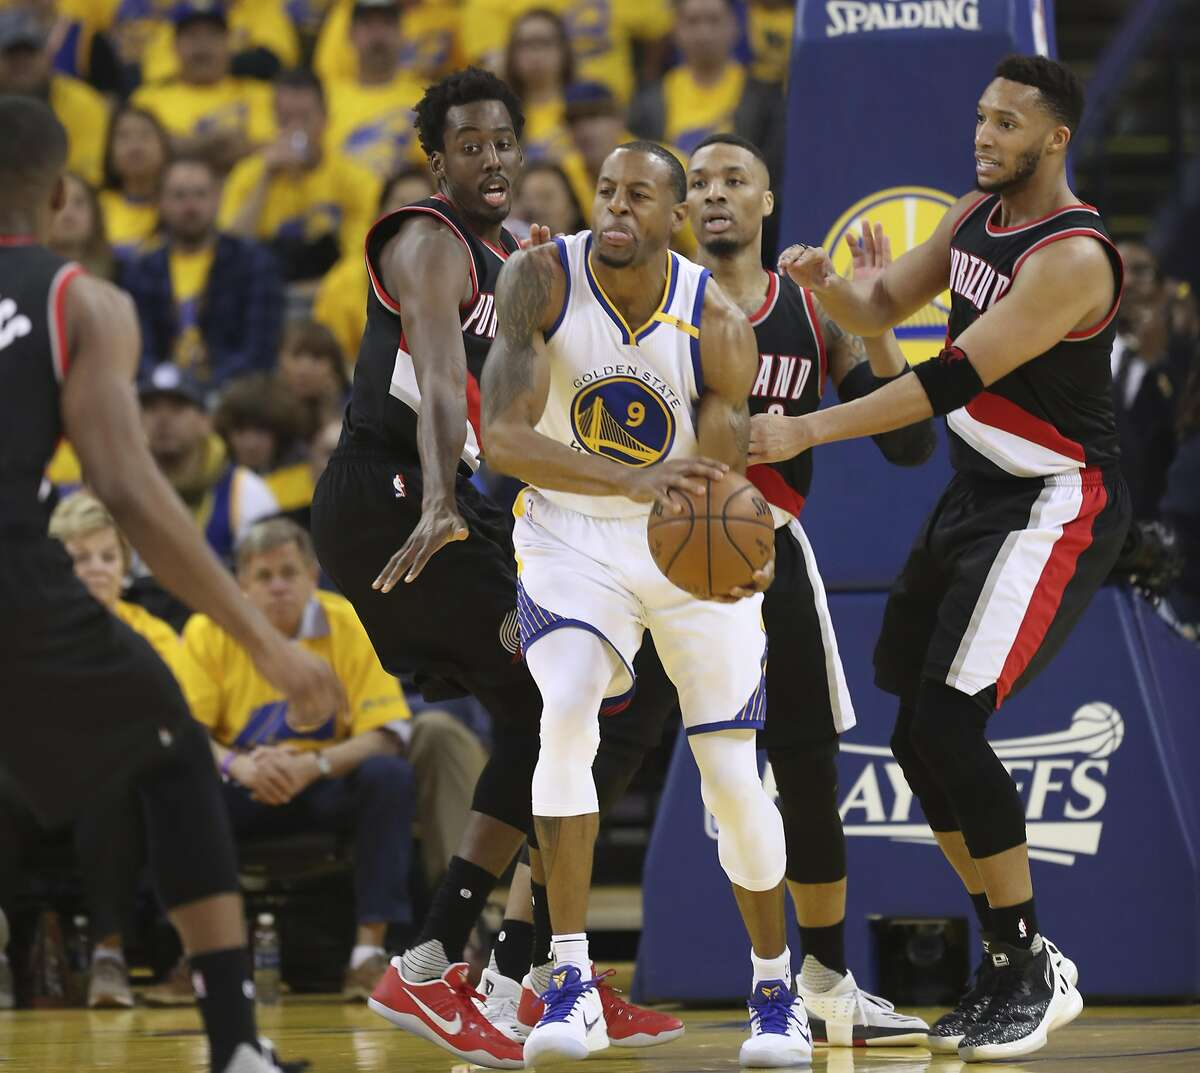 Golden State Warriors' Andre Iguodala is surrounded by Portland Trailblazers in the second quarter during Game 1 of the First Round of the Western Conference 2017 NBA Playoffs at Oracle Arena on Sunday, April 16, 2017 in Oakland, Calif.